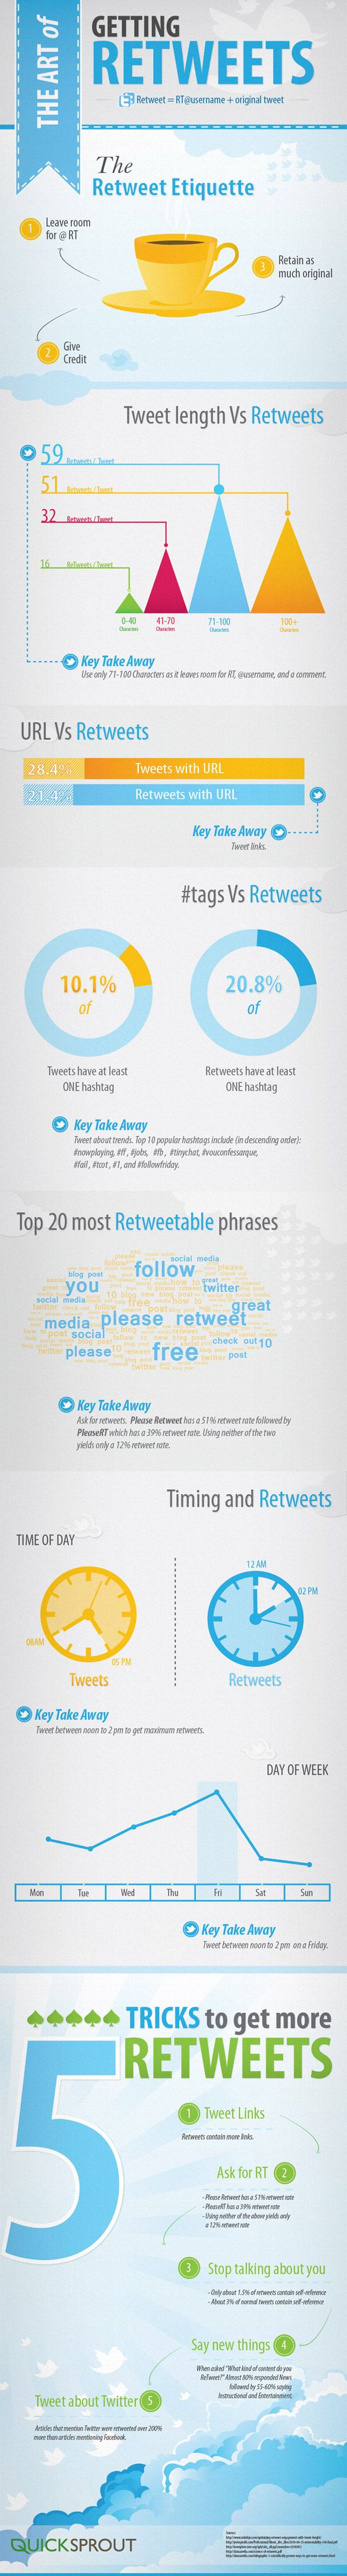 The Art Of Getting More Retweets - Infographic n° 2500 !